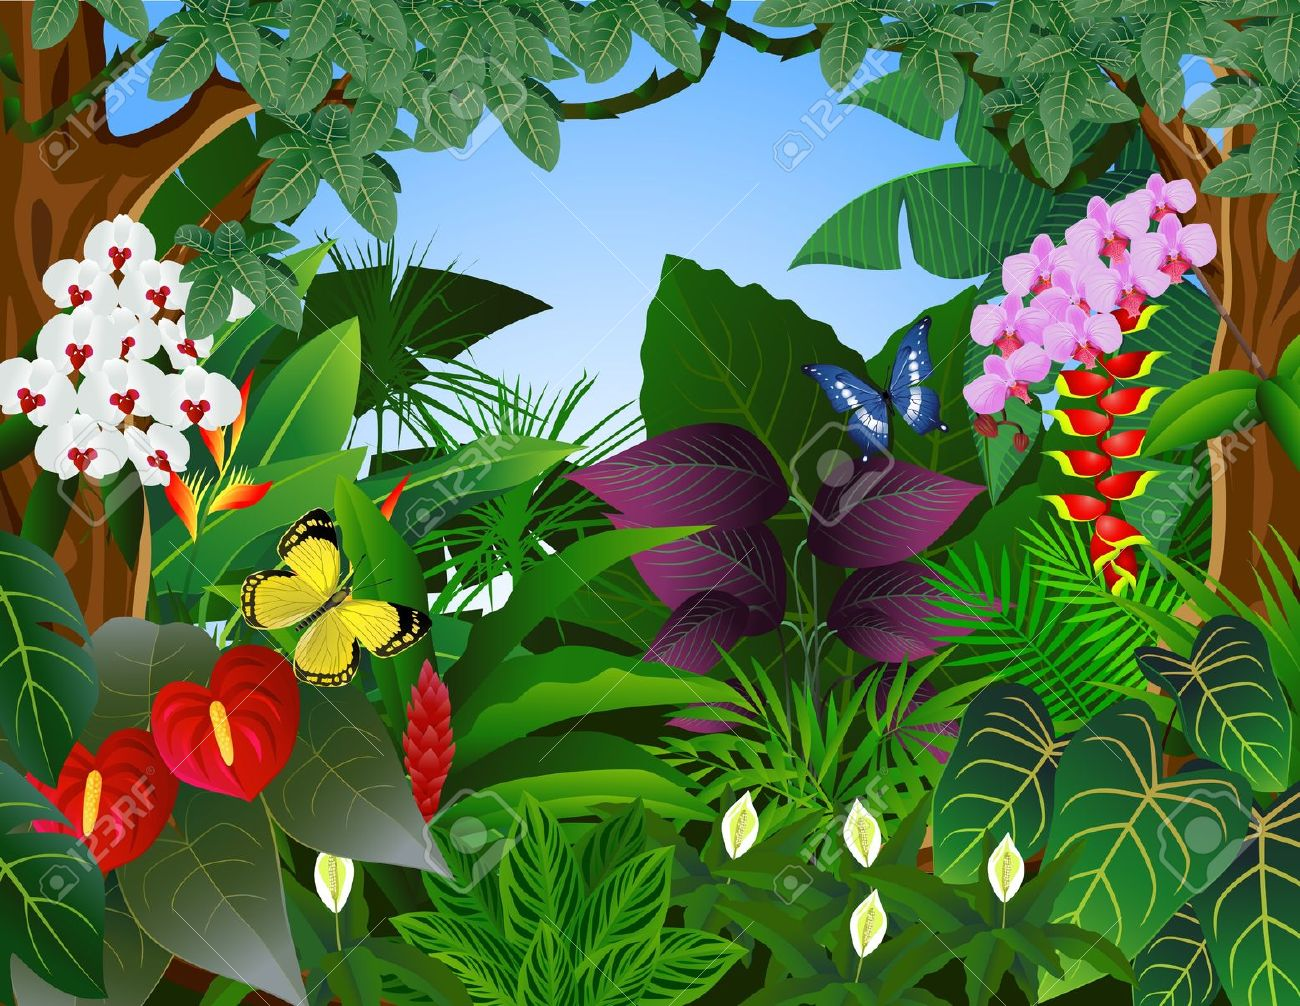 Rainforest clipart #15, Download drawings